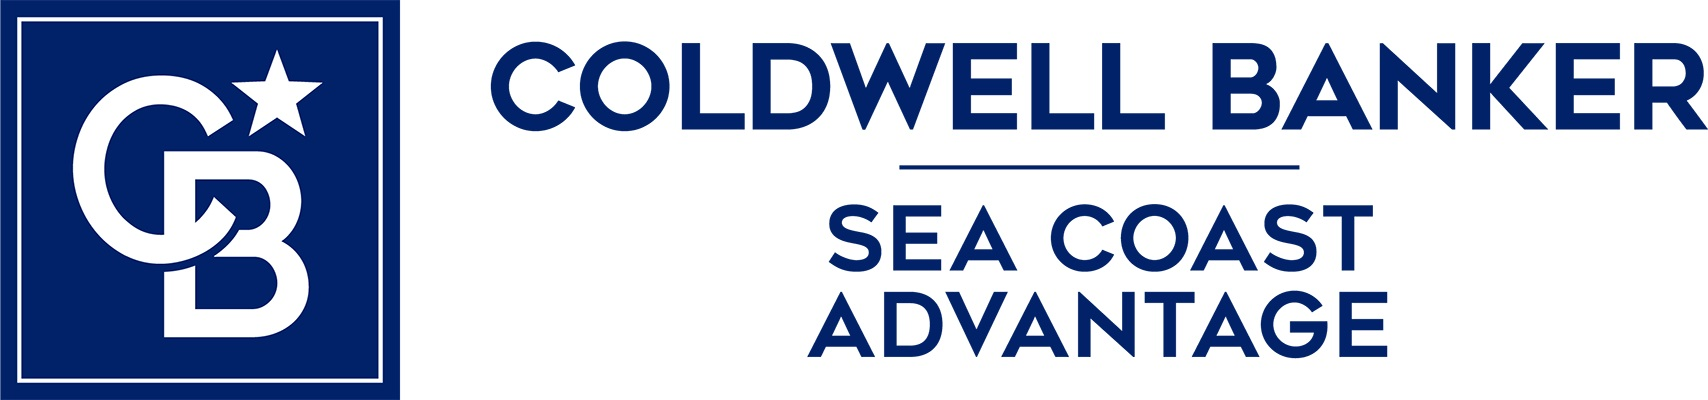 Tina Karimi - Coldwell Banker Sea Coast Advantage Realty Logo